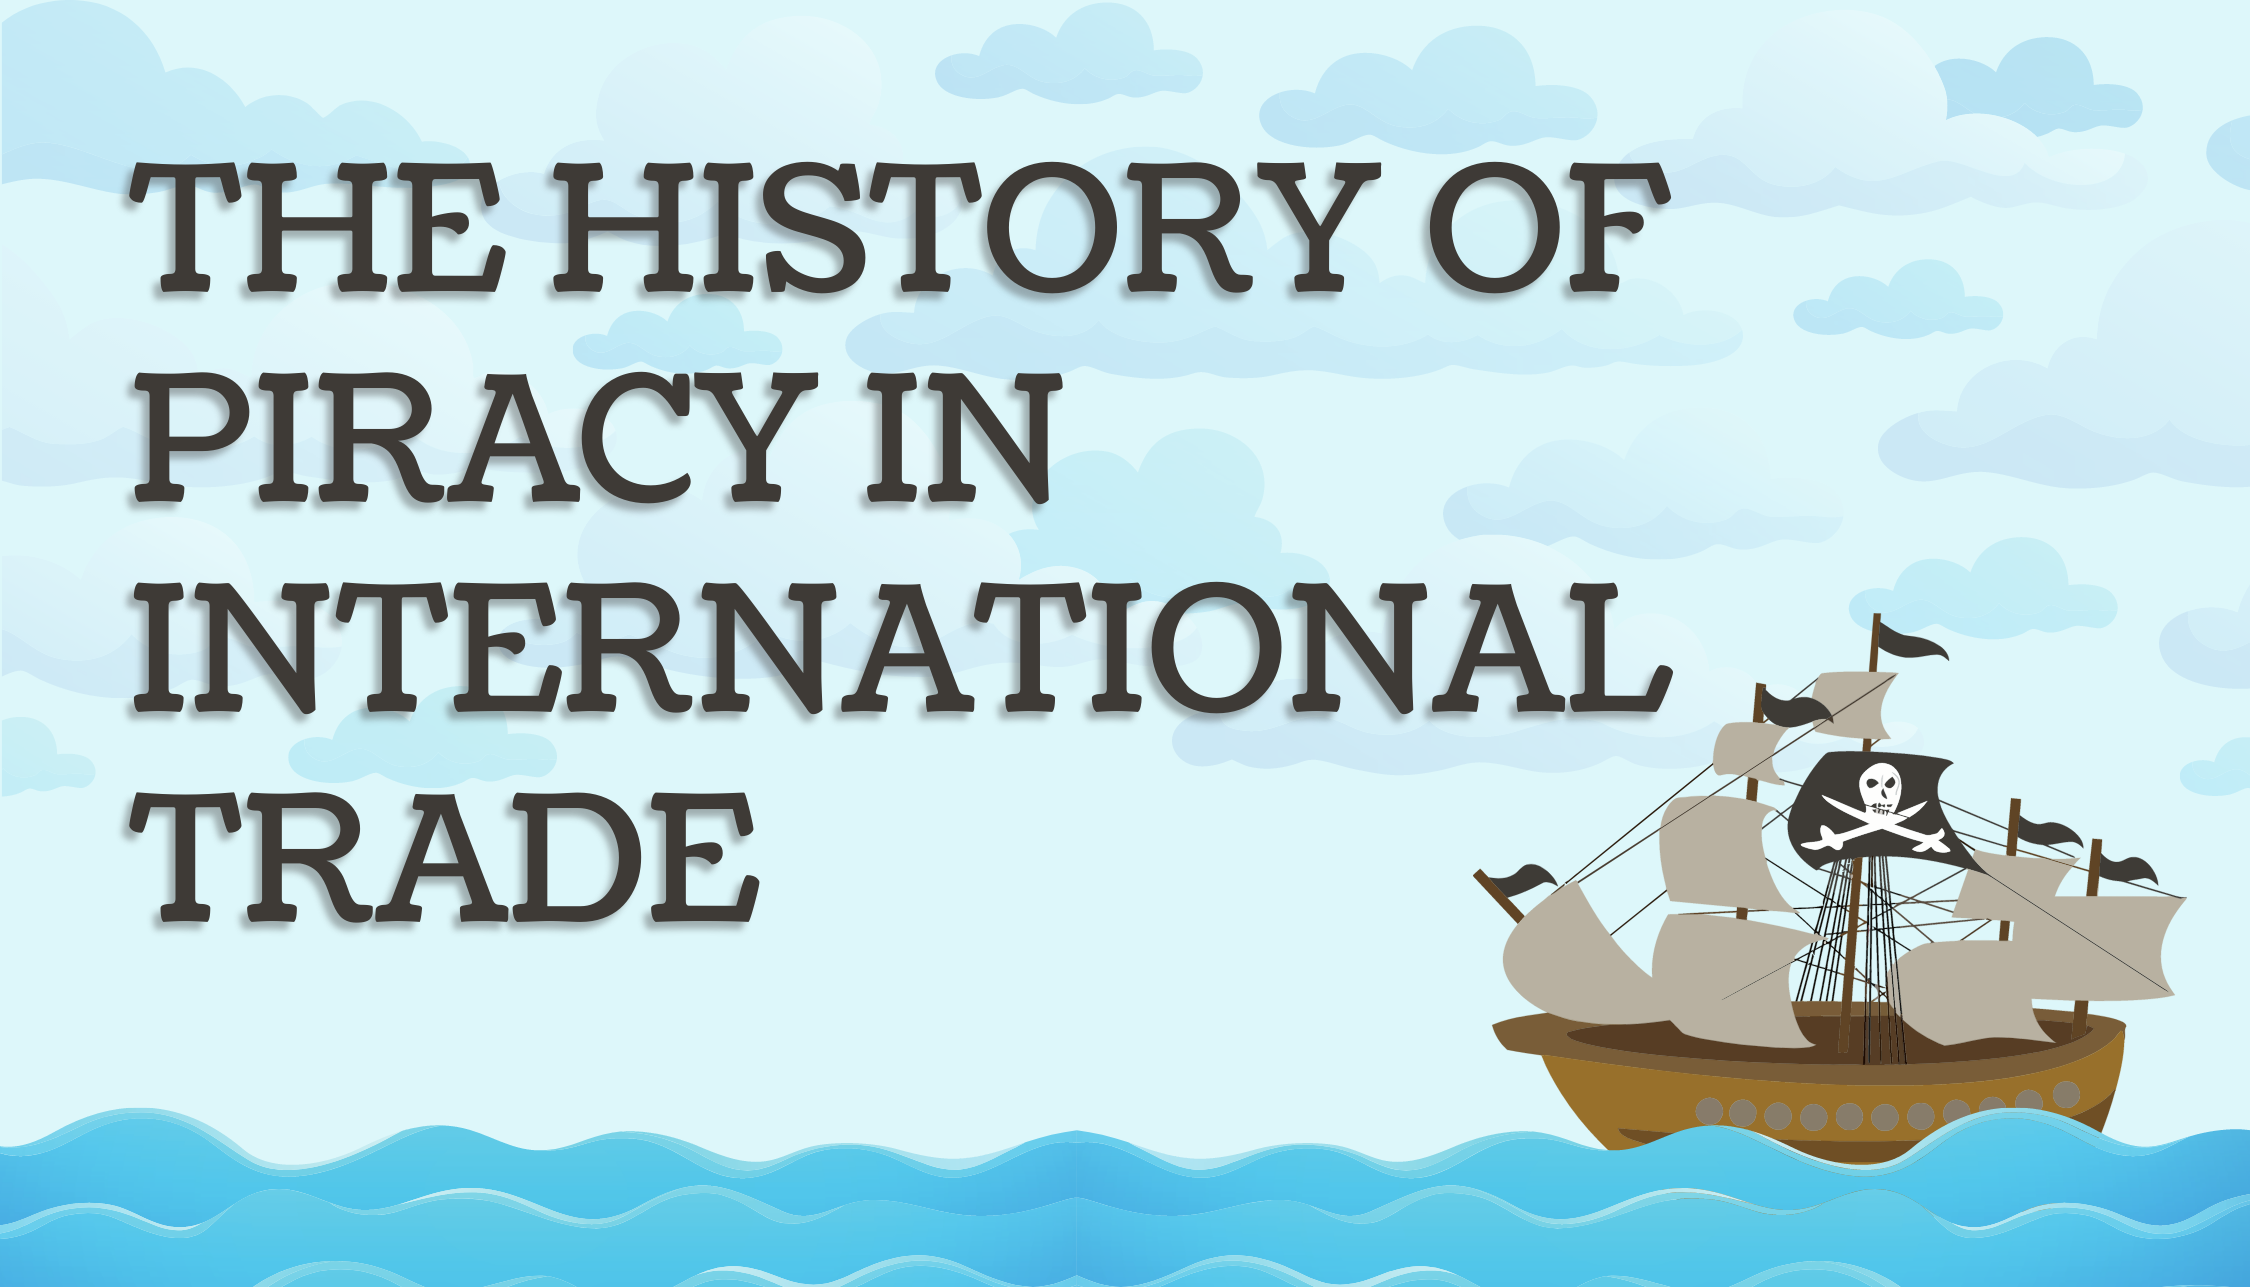 The History of Piracy in International Trade